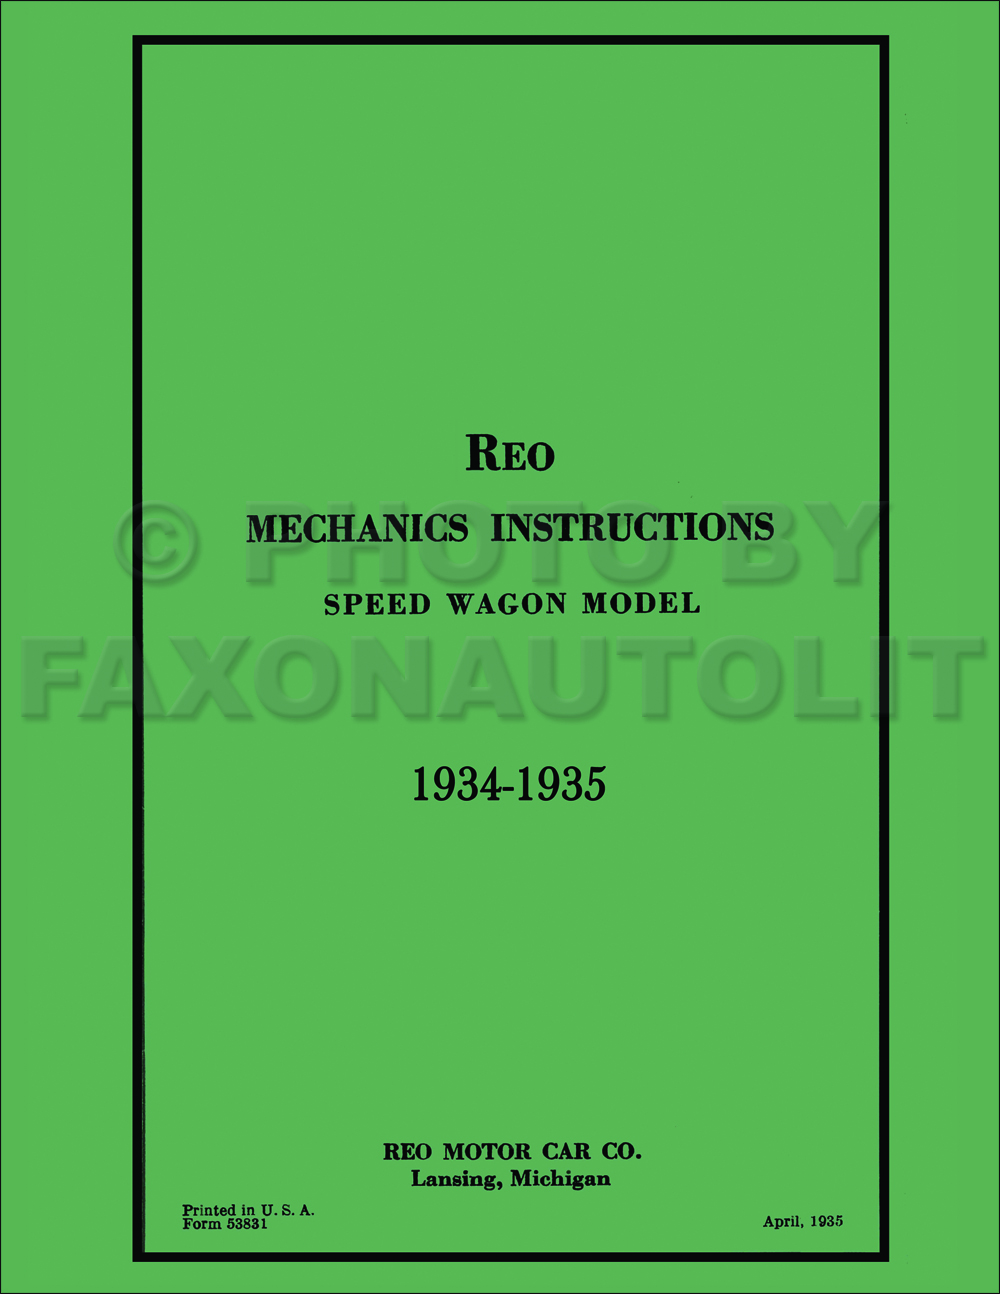 1951 Reo Wiring Diagram Another Blog About 1910 Ford Tractor Electrical 1934 1935 Speedwagon Repair Shop Manual Set Reprint Rh Faxonautoliterature Com